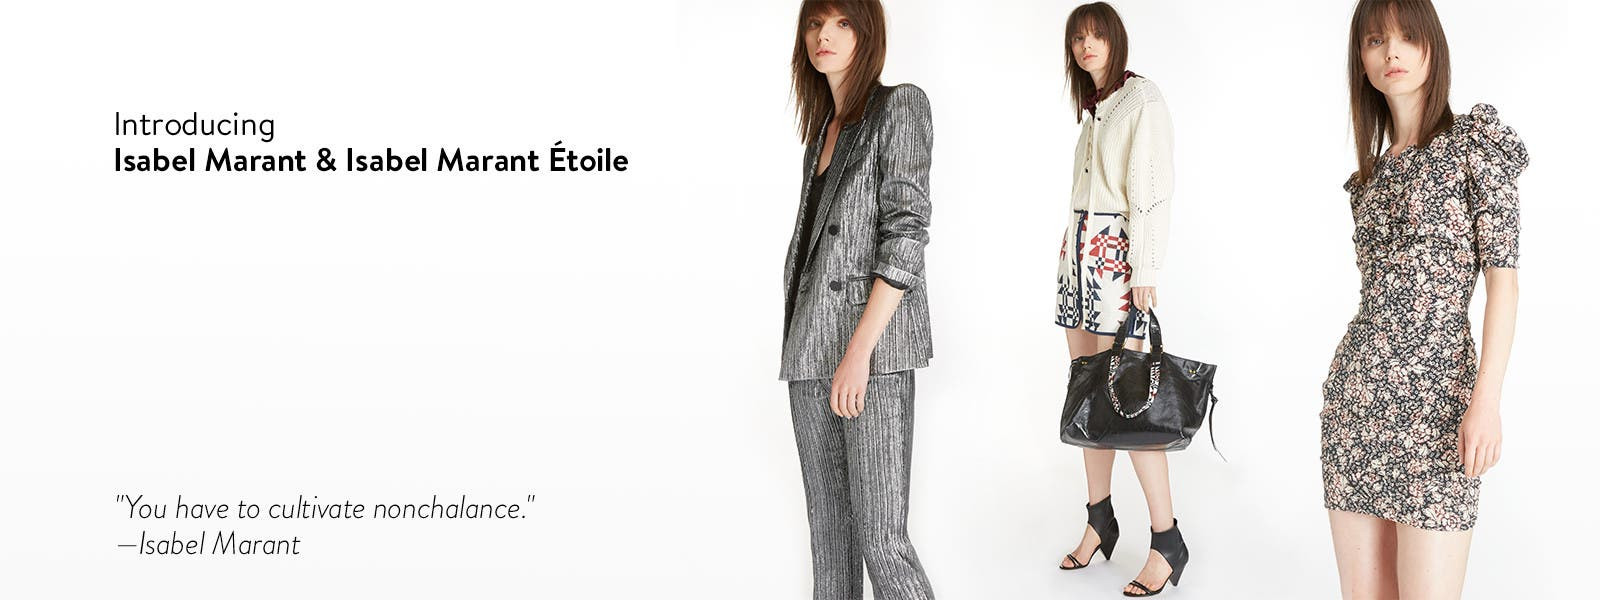 Introducing Isabel Marant and Isabel Marant Etoile clothing.